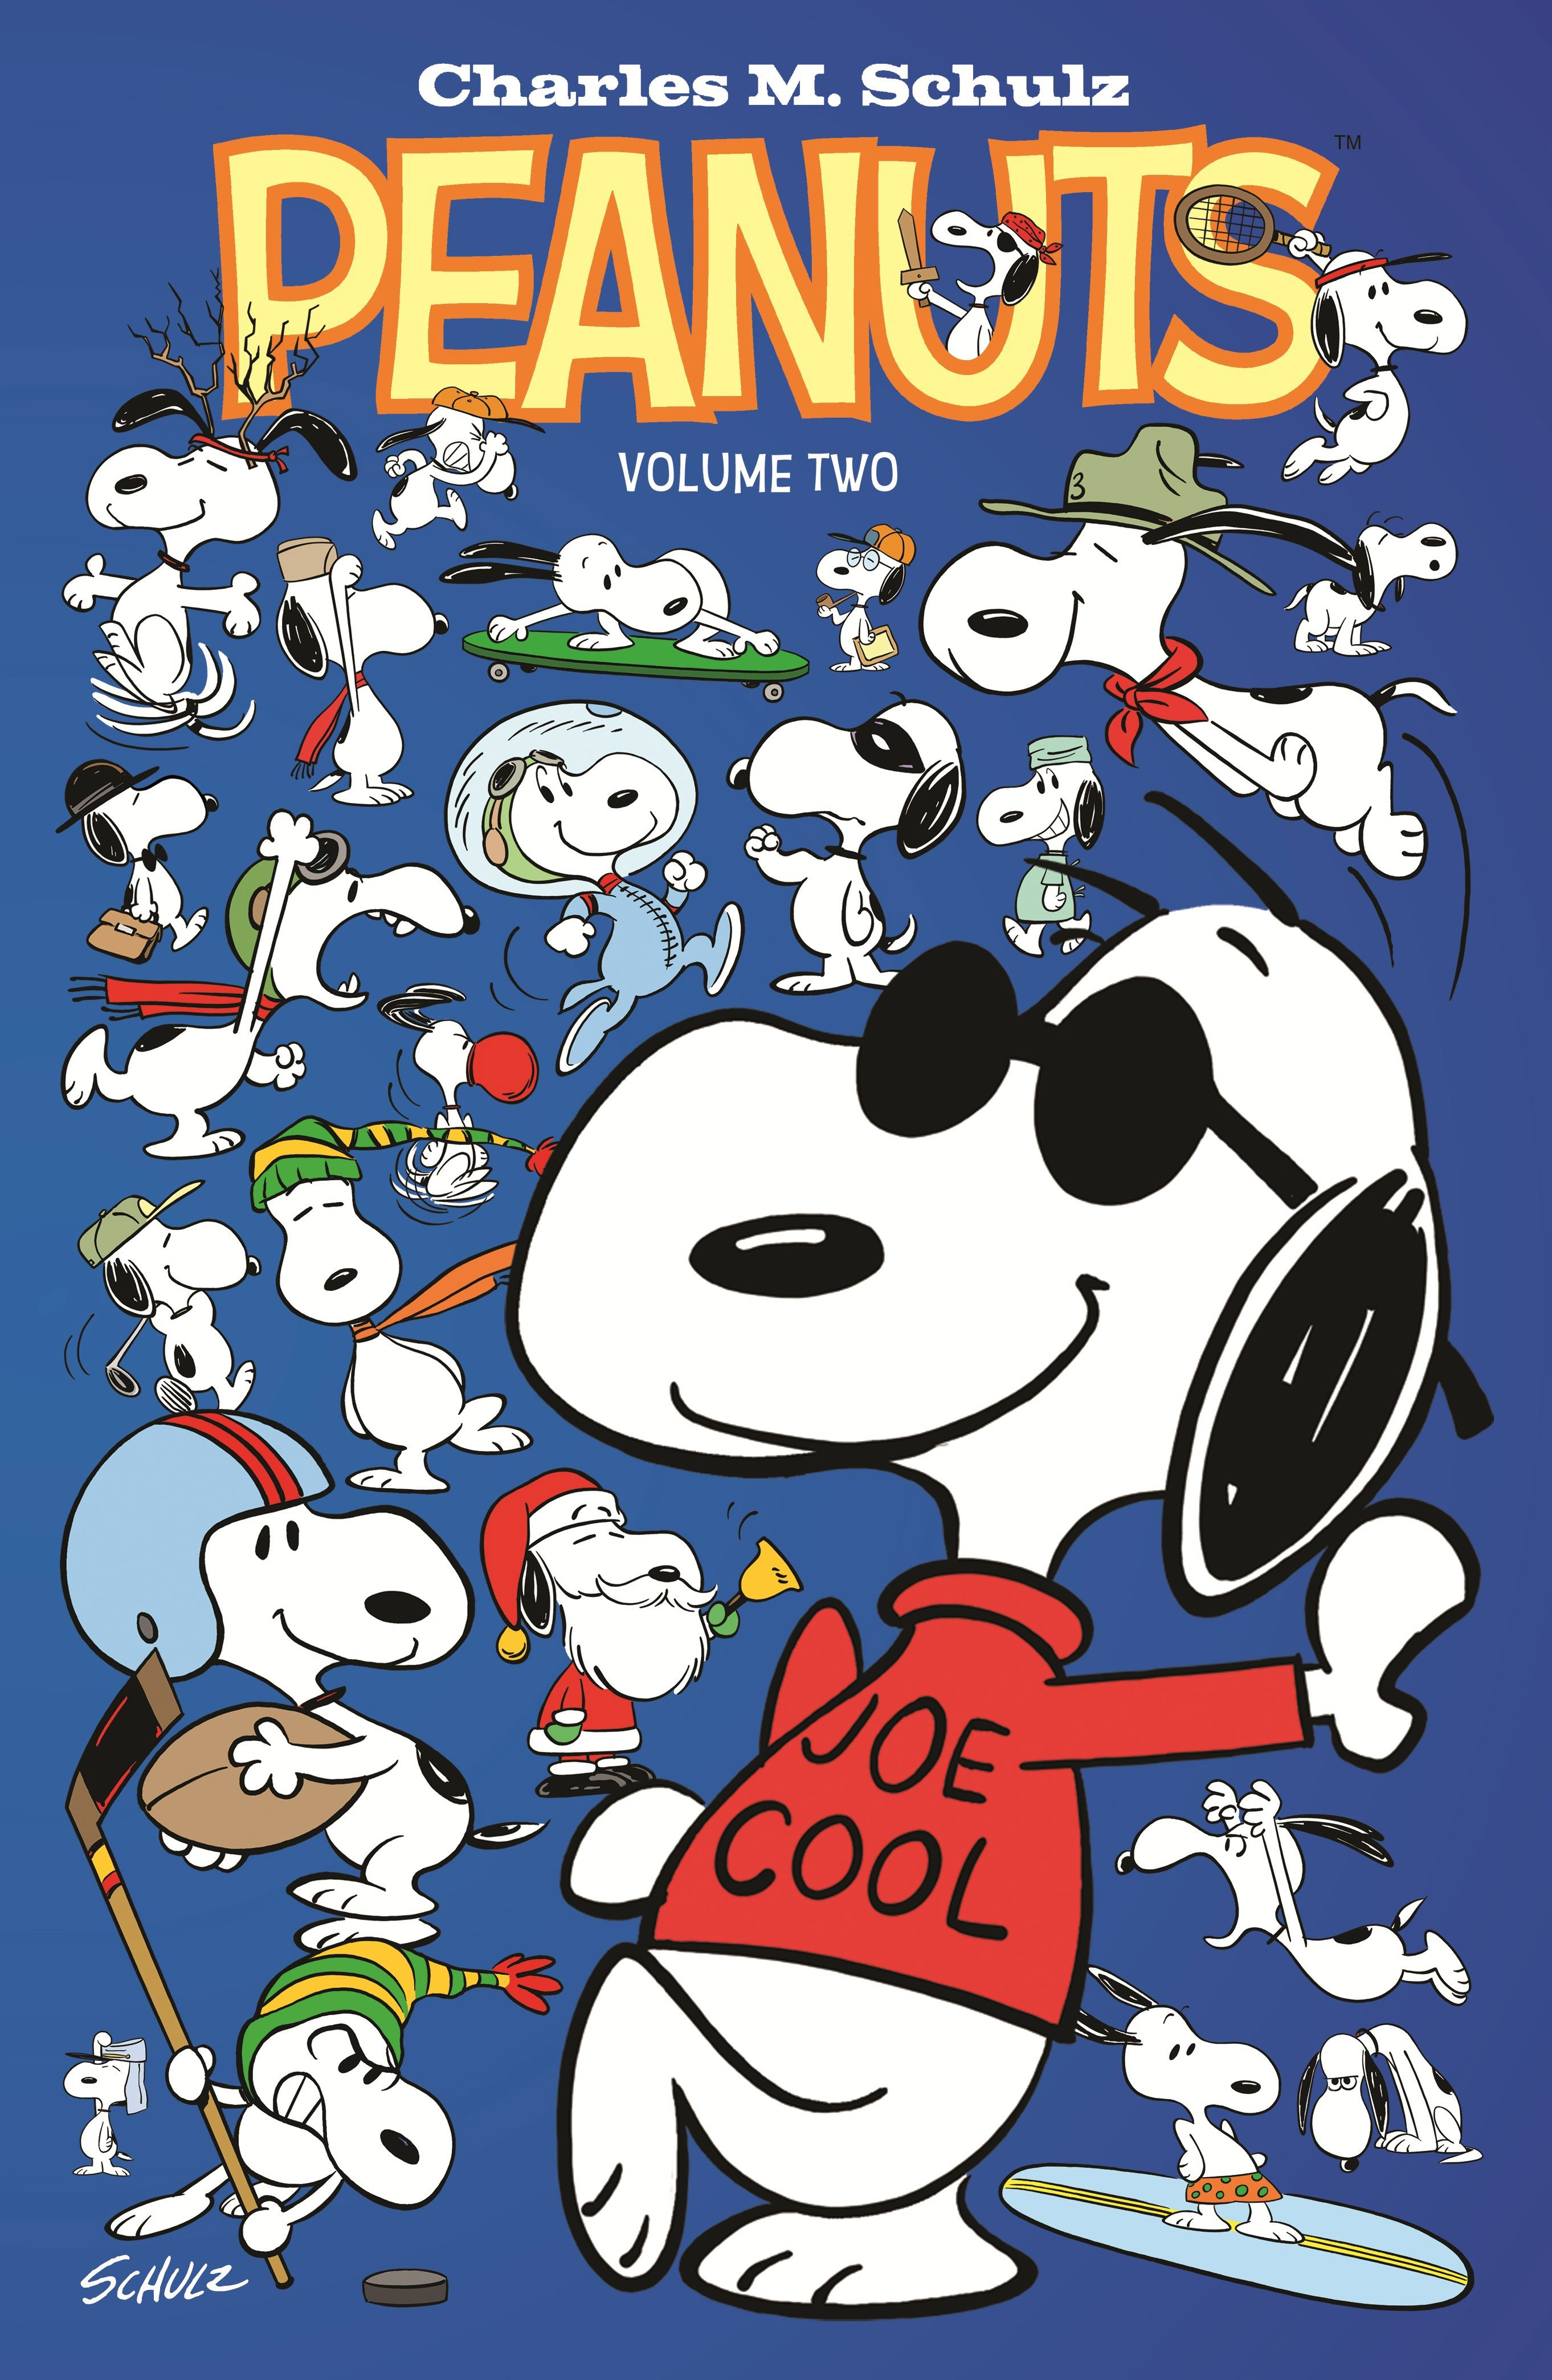 Peanuts-vol-2-9781608862993_hr